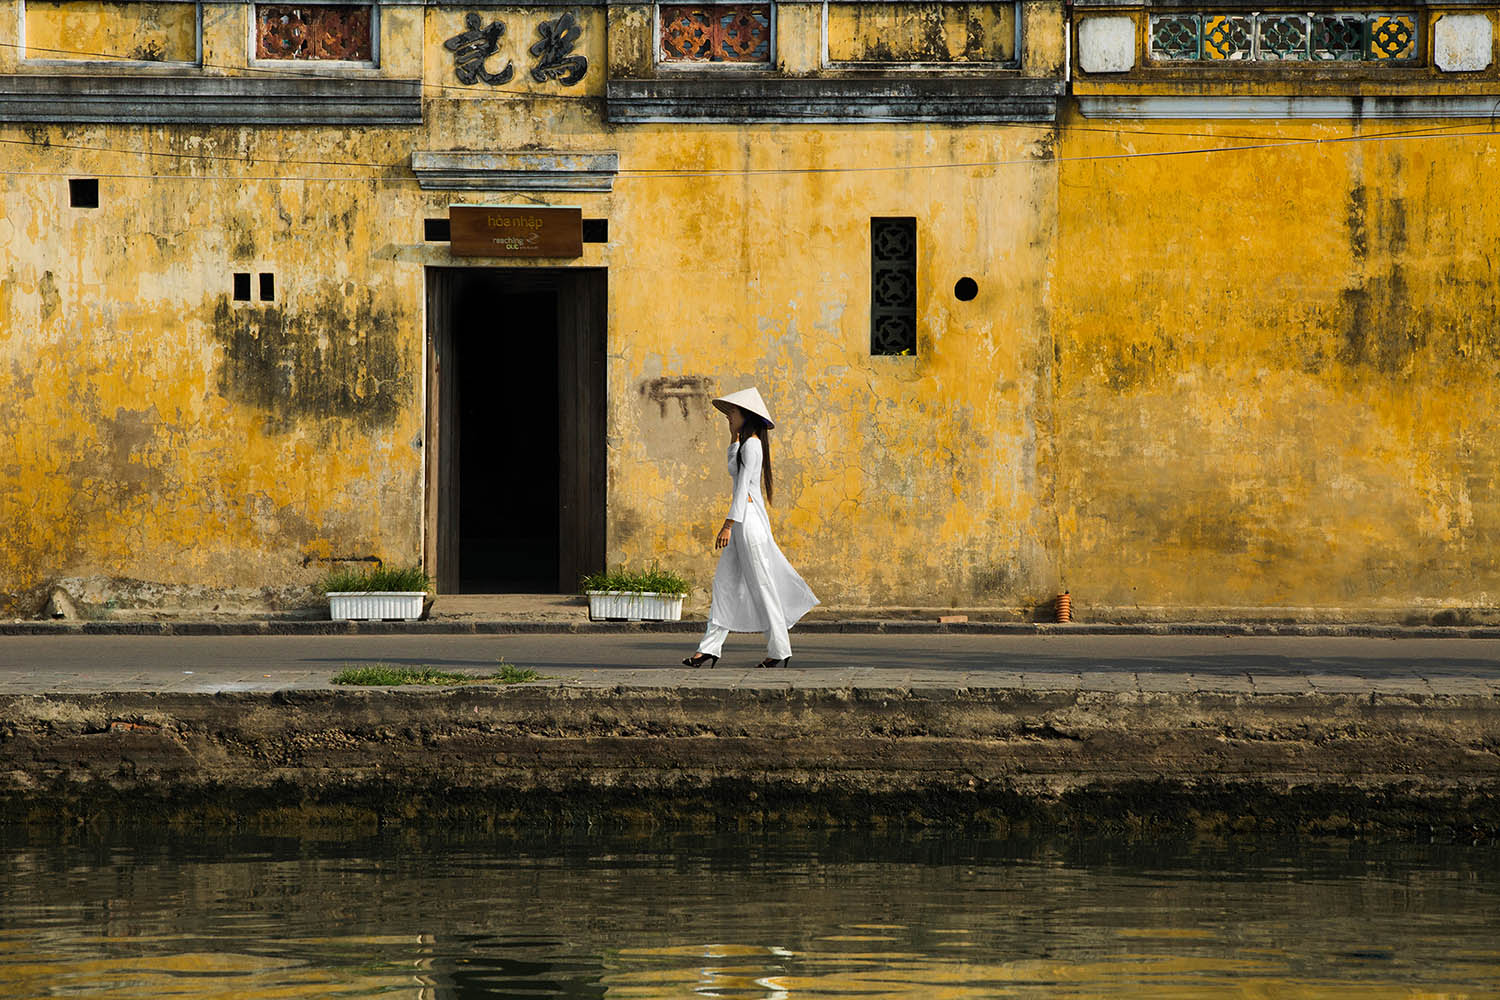 Tradition hoi an